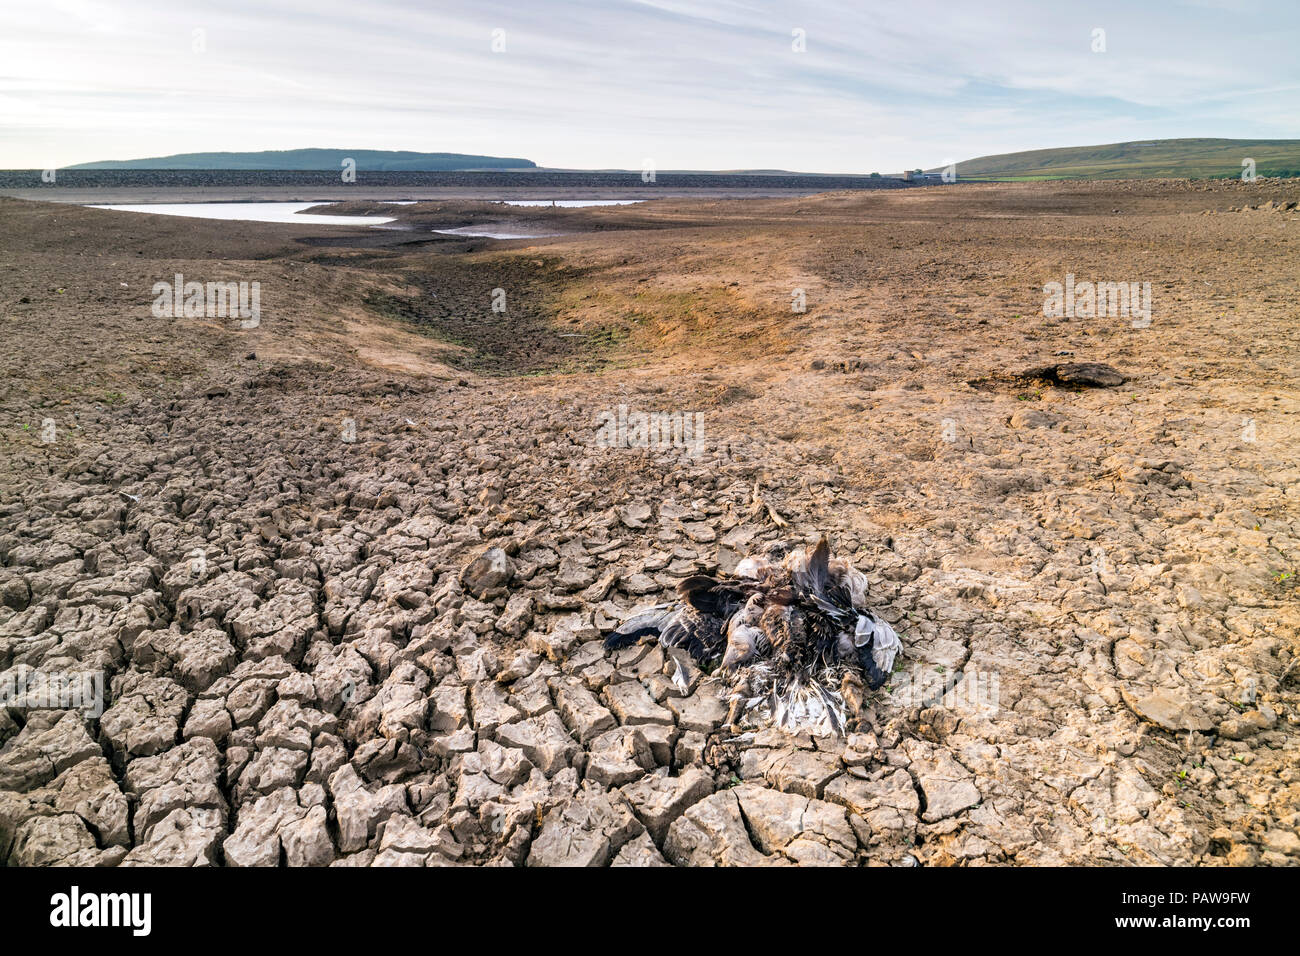 Selset Reservoir, Lunedale, County Durham. Wednesday 25th July 2018. UK Weather.  With temperatures expected to reach 33 degrees centigrade in some parts of the UK, not only do humans suffer in the heat, but so do animals.  In northern England the sad remains of a desiccated bird lying on the sun-baked shores of Selset Reservoir creates a scene more reminiscent of the African plains than the North Pennines. David Forster/Alamy Live News - Stock Image